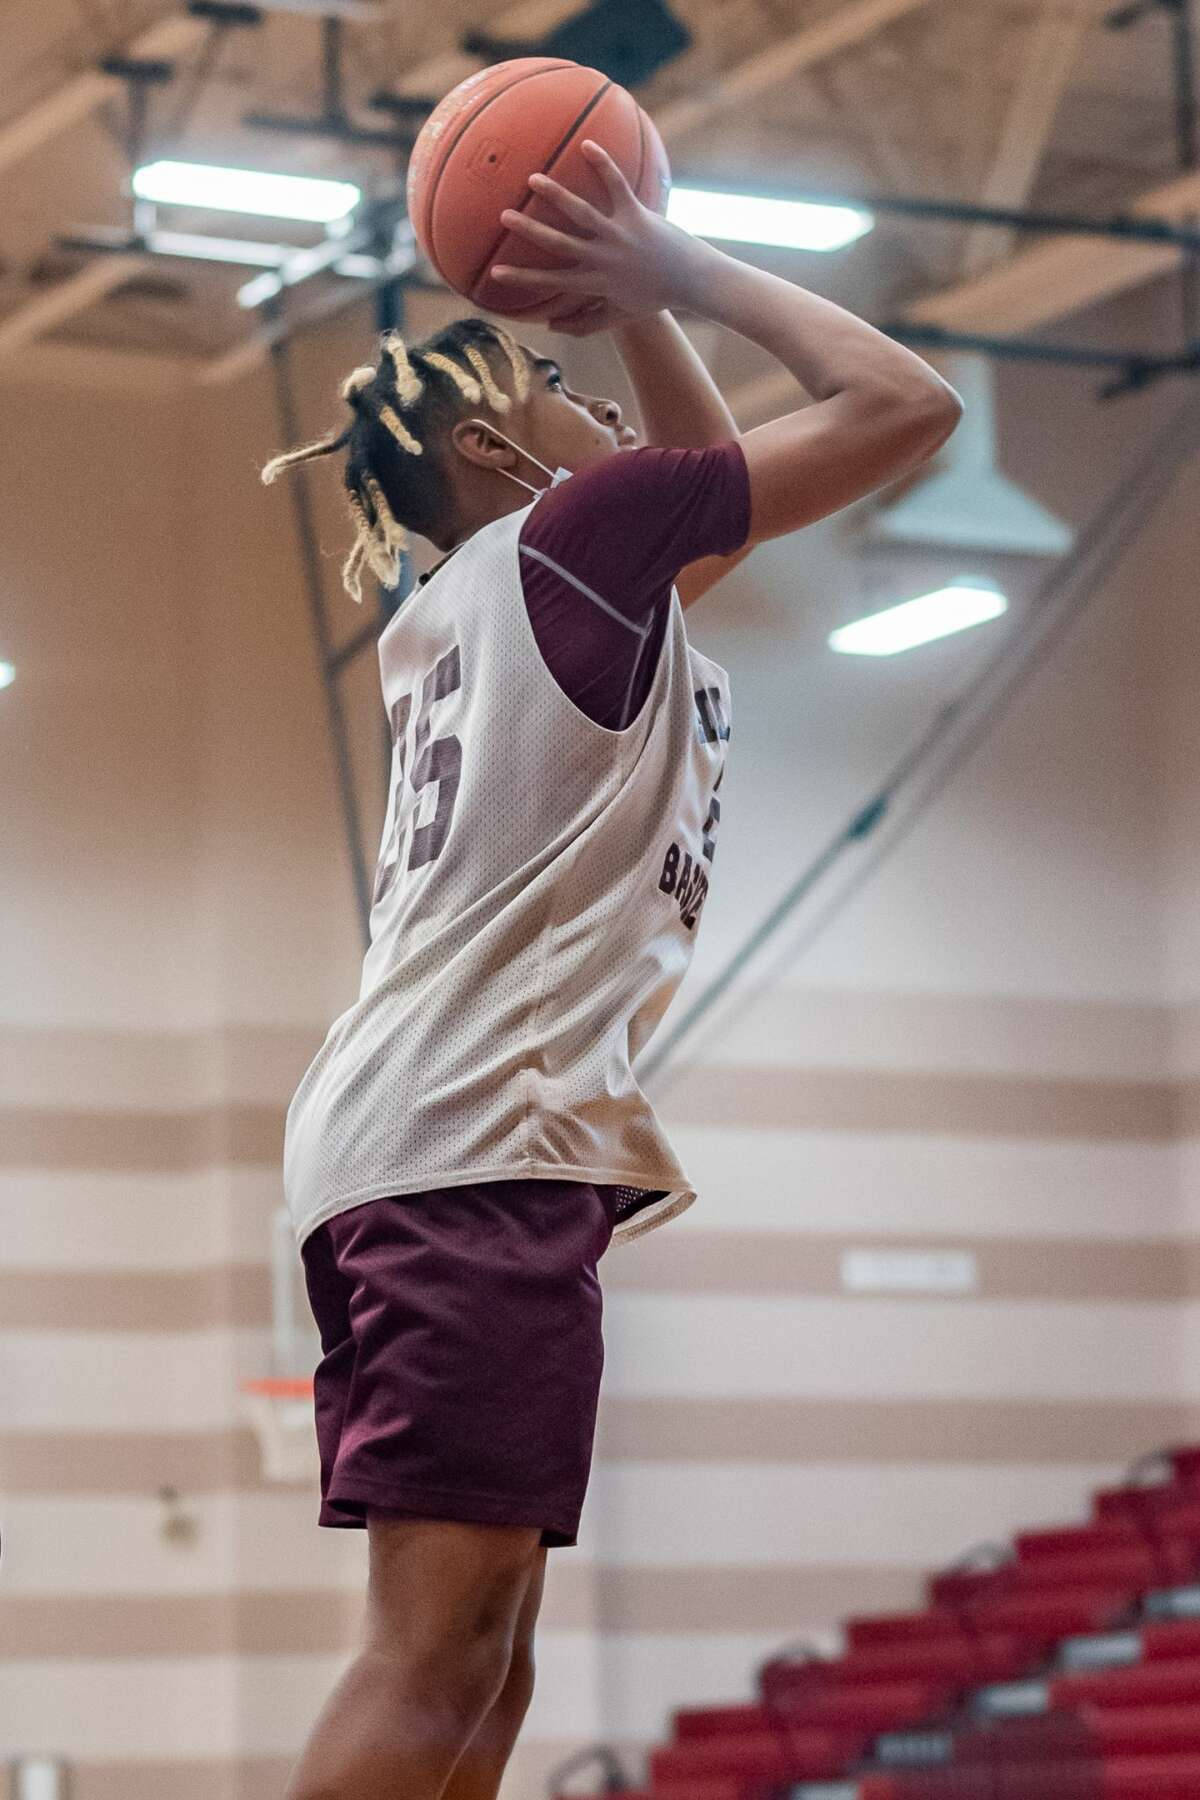 Sophomore Jerrick Harper takes a shot during practice. Silsbee High School basketball, along with other SETX teams, is in a rebuilding mode this season. Photo made on November 19, 2020. Fran Ruchalski/The Enterprise